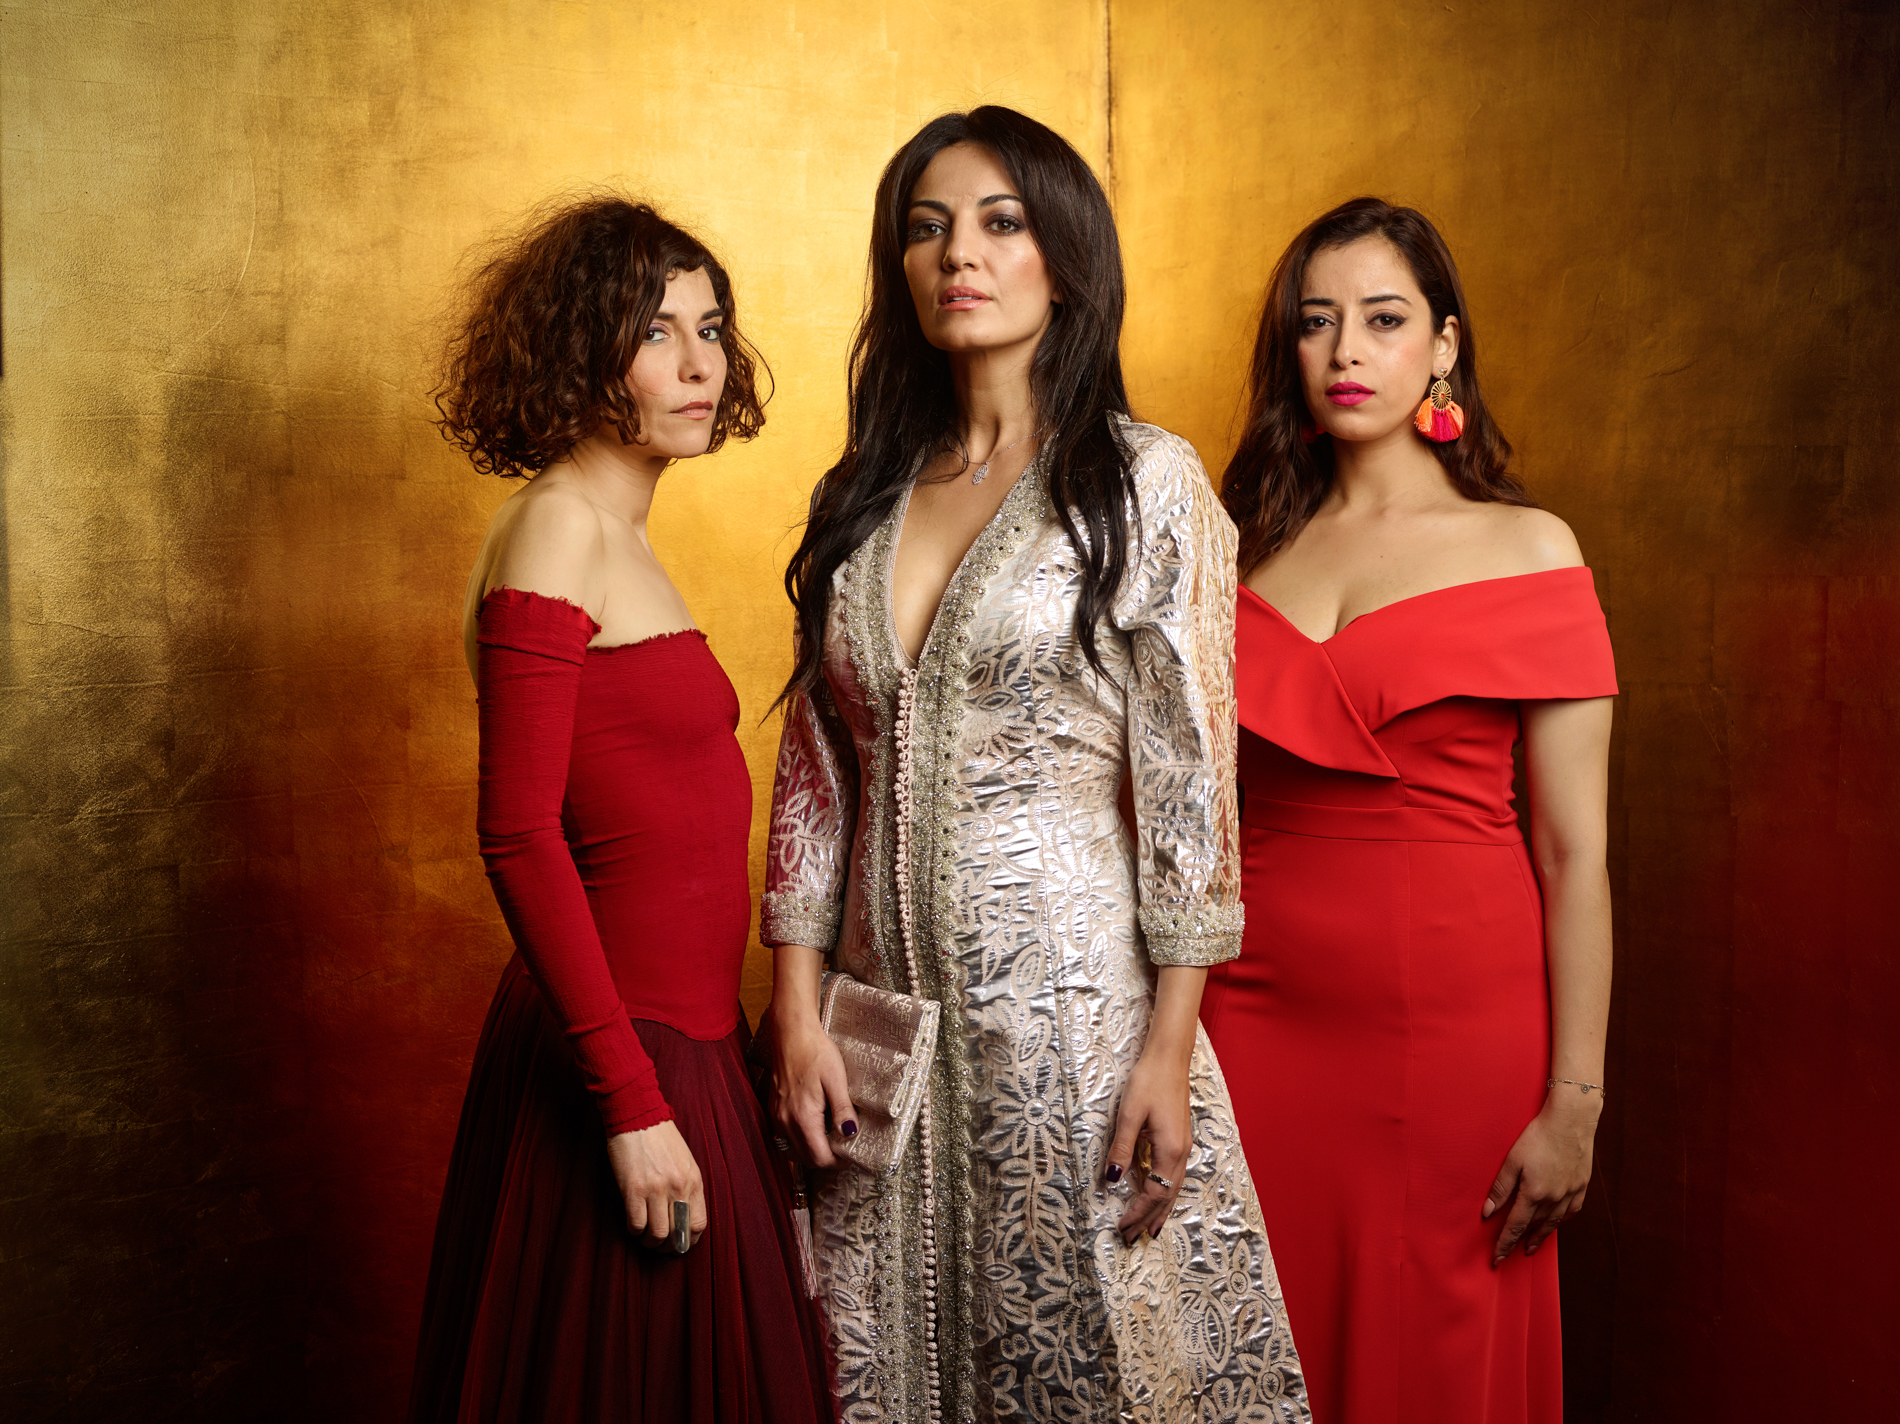 From left: Lubna Azabal (actress), Maryam Touzani (director) and Nissin Erradi (actress)